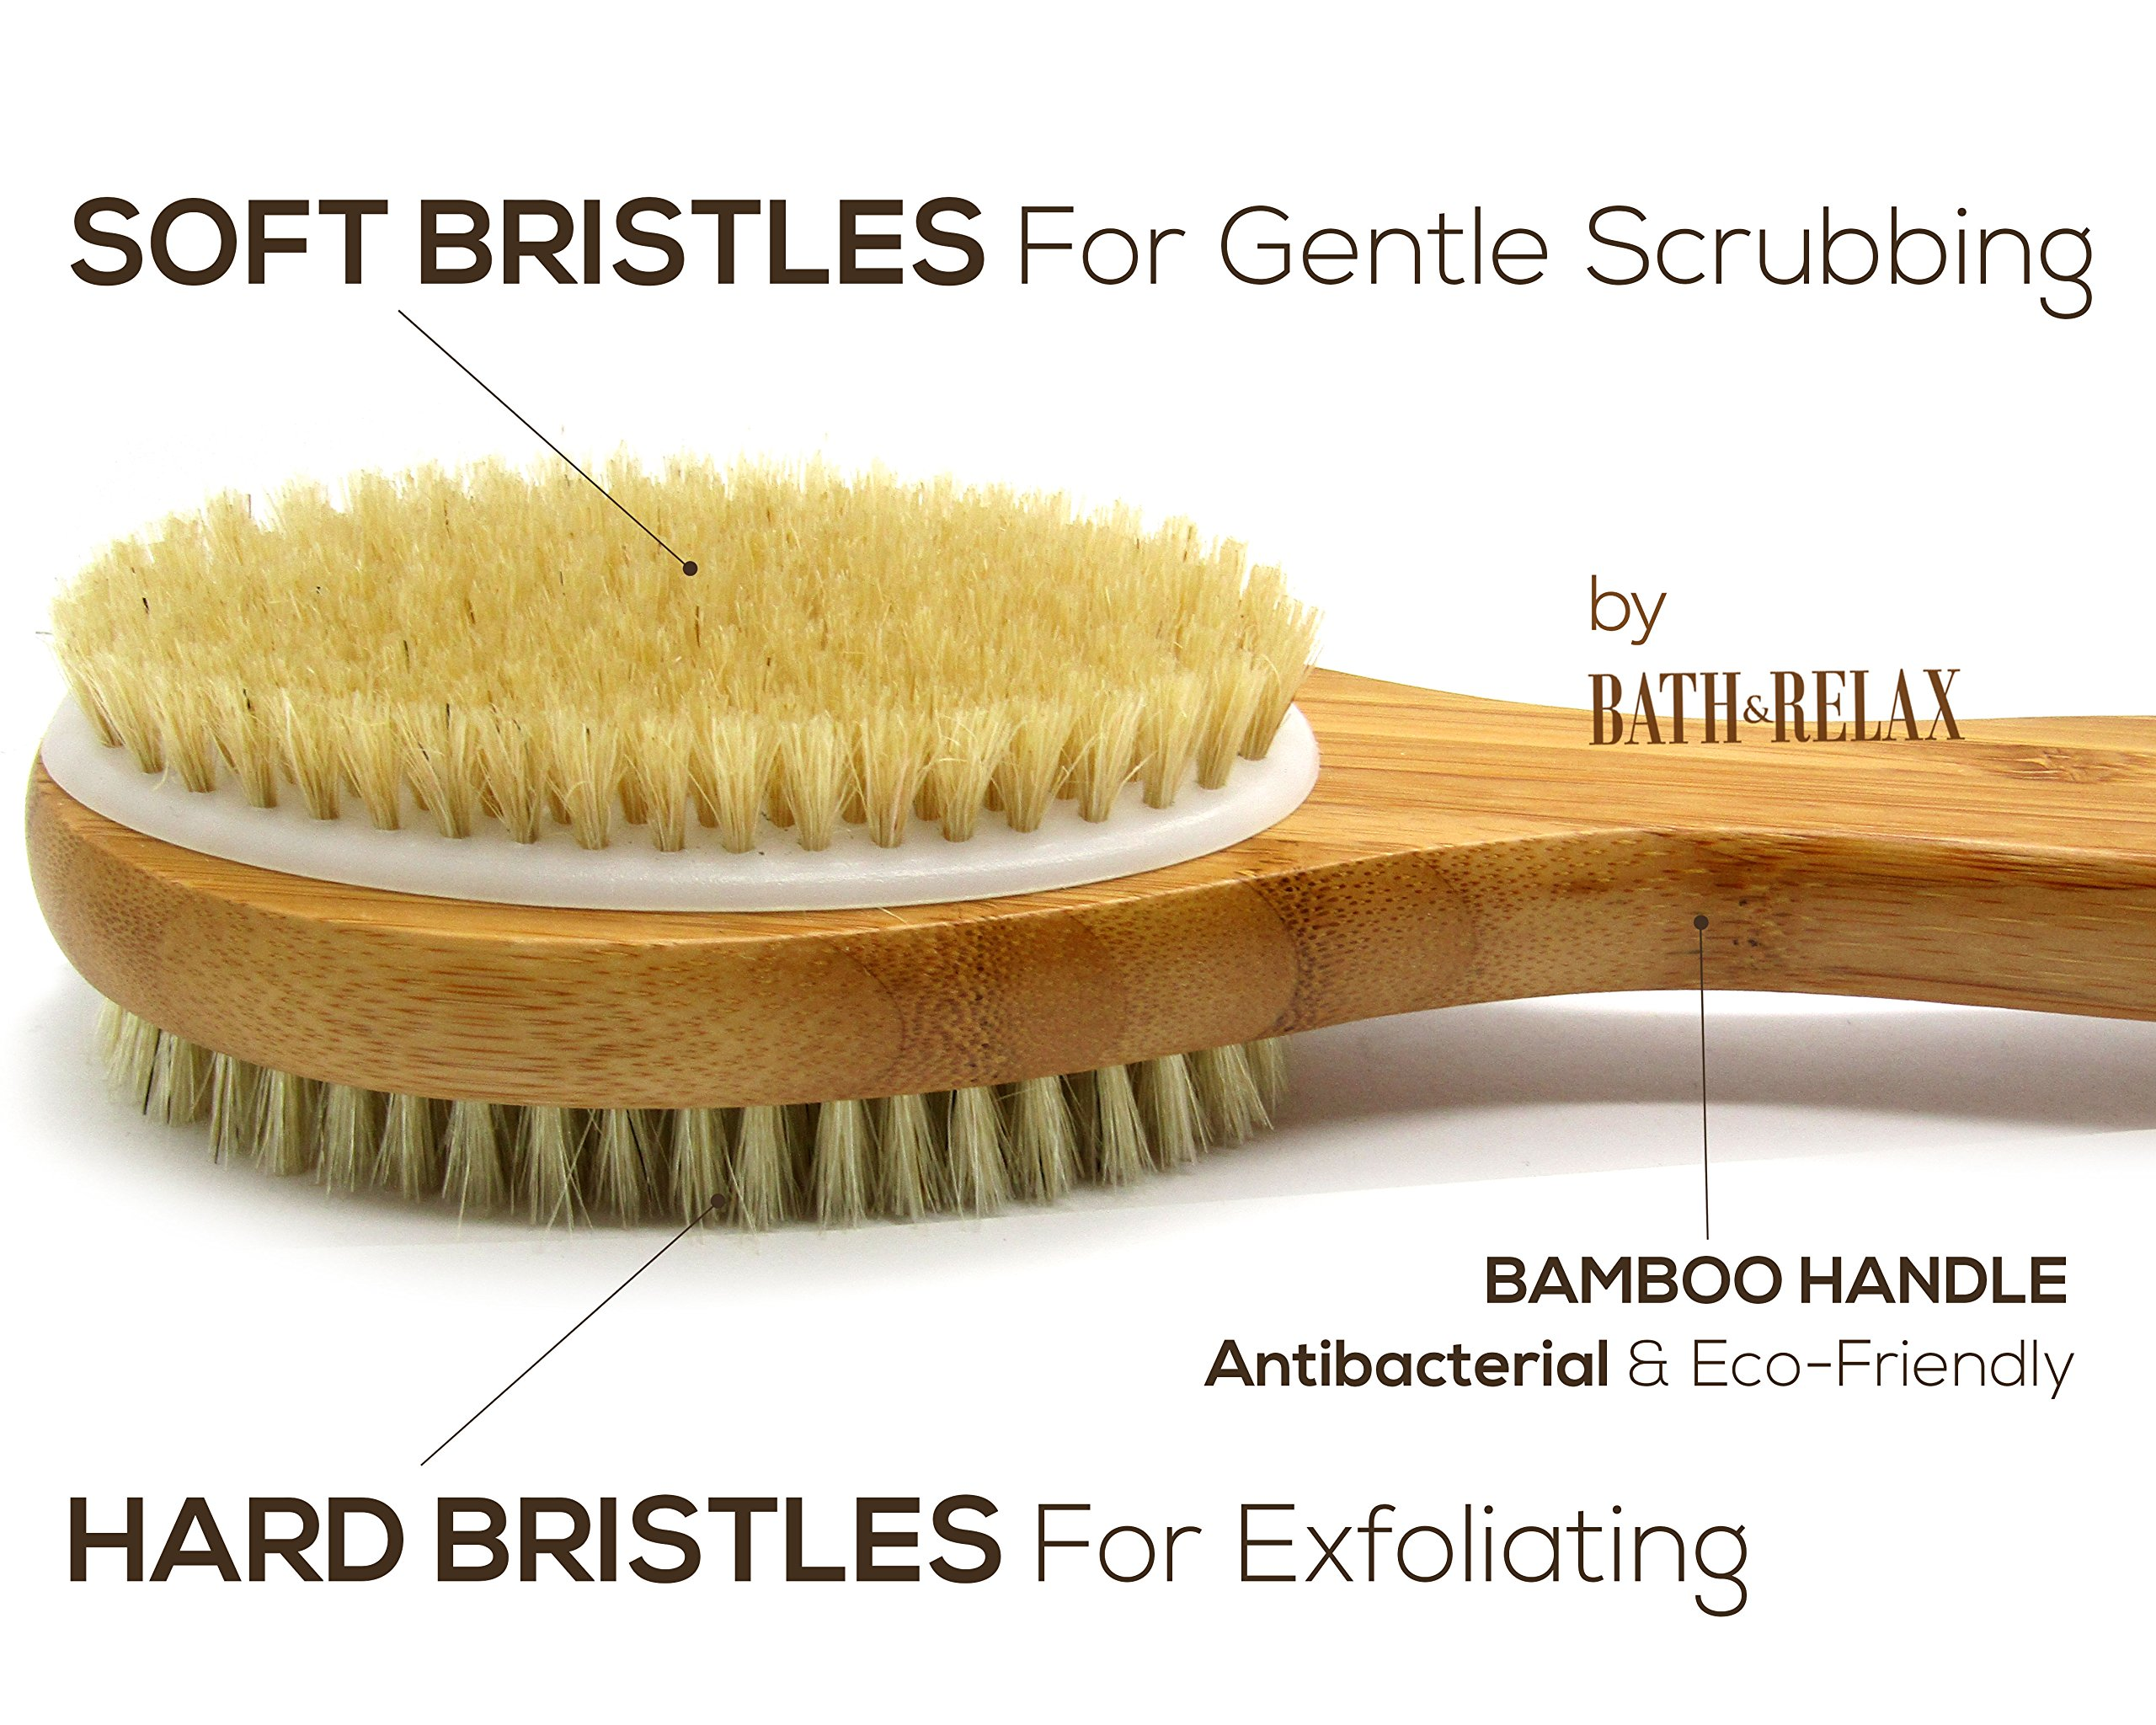 Bath & Relax Bamboo Bath Brush Long 17'' Handle Back Body Scrubber For shower dry/Wet Skin brushing Suitable for men/women by Bath & Relax (Image #2)